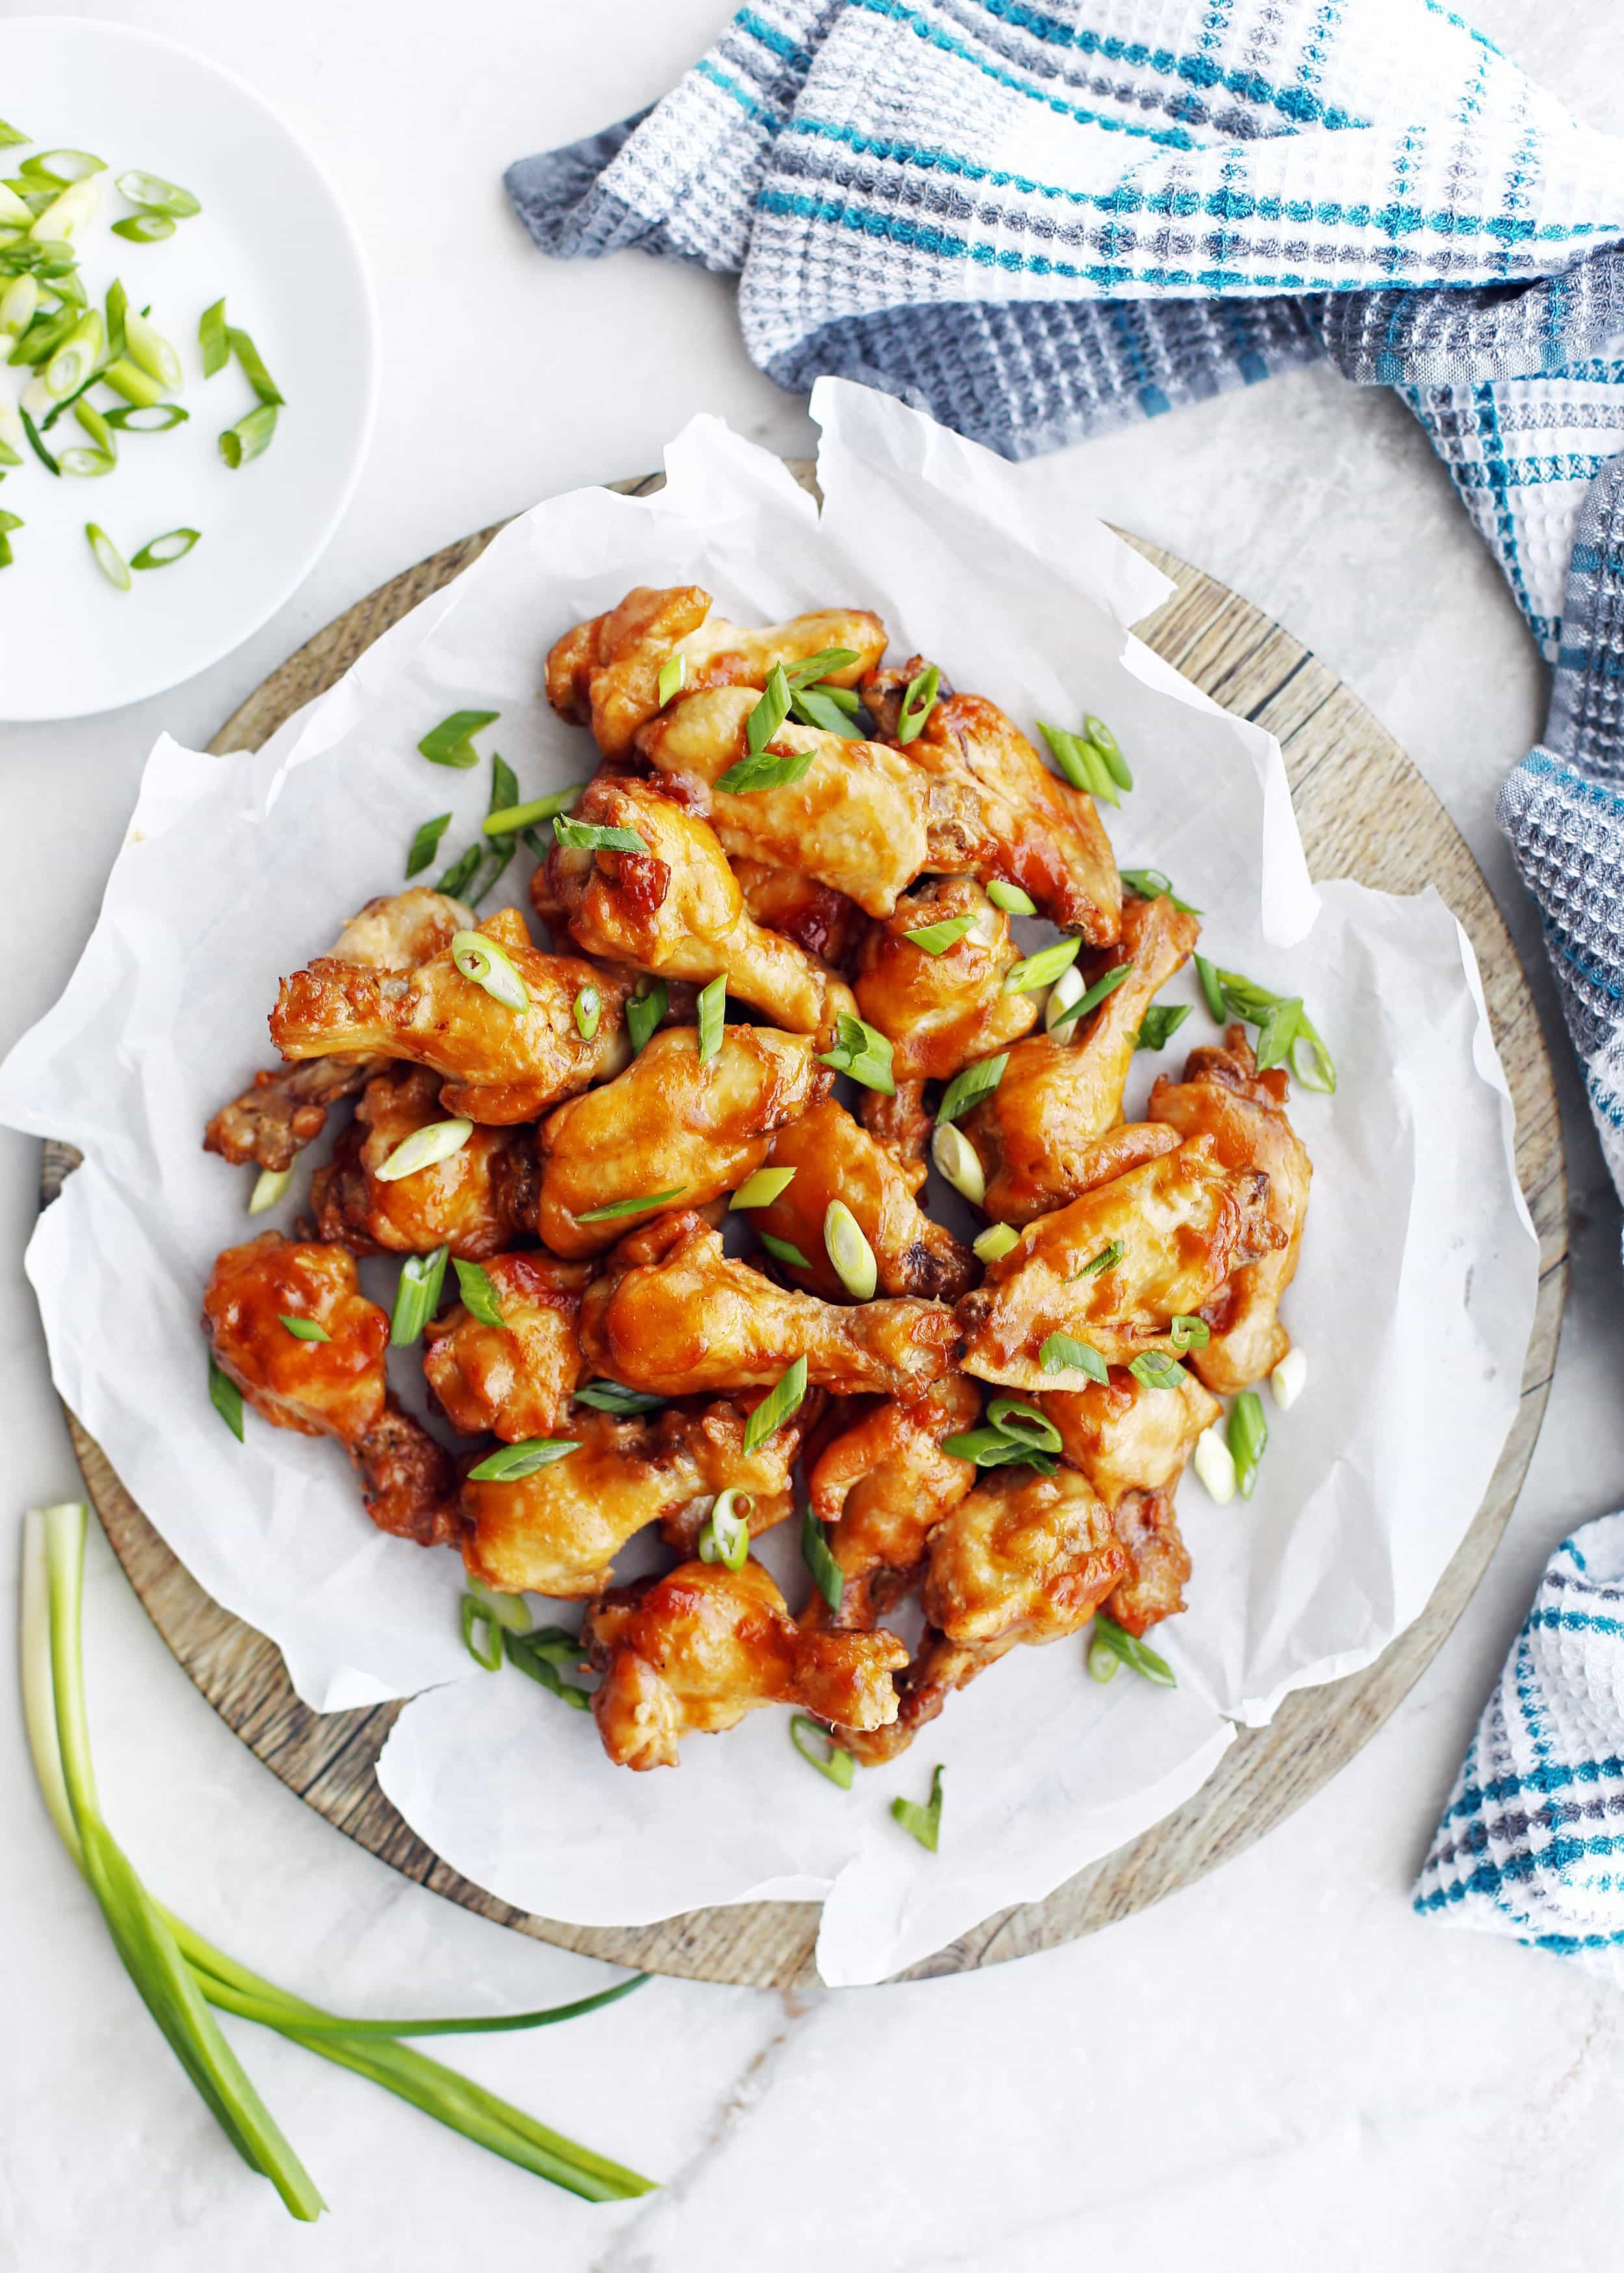 Overhead view of Instant Pot Orange Teriyaki Chicken Wings piled on a parchment paper-topped wooden platter.